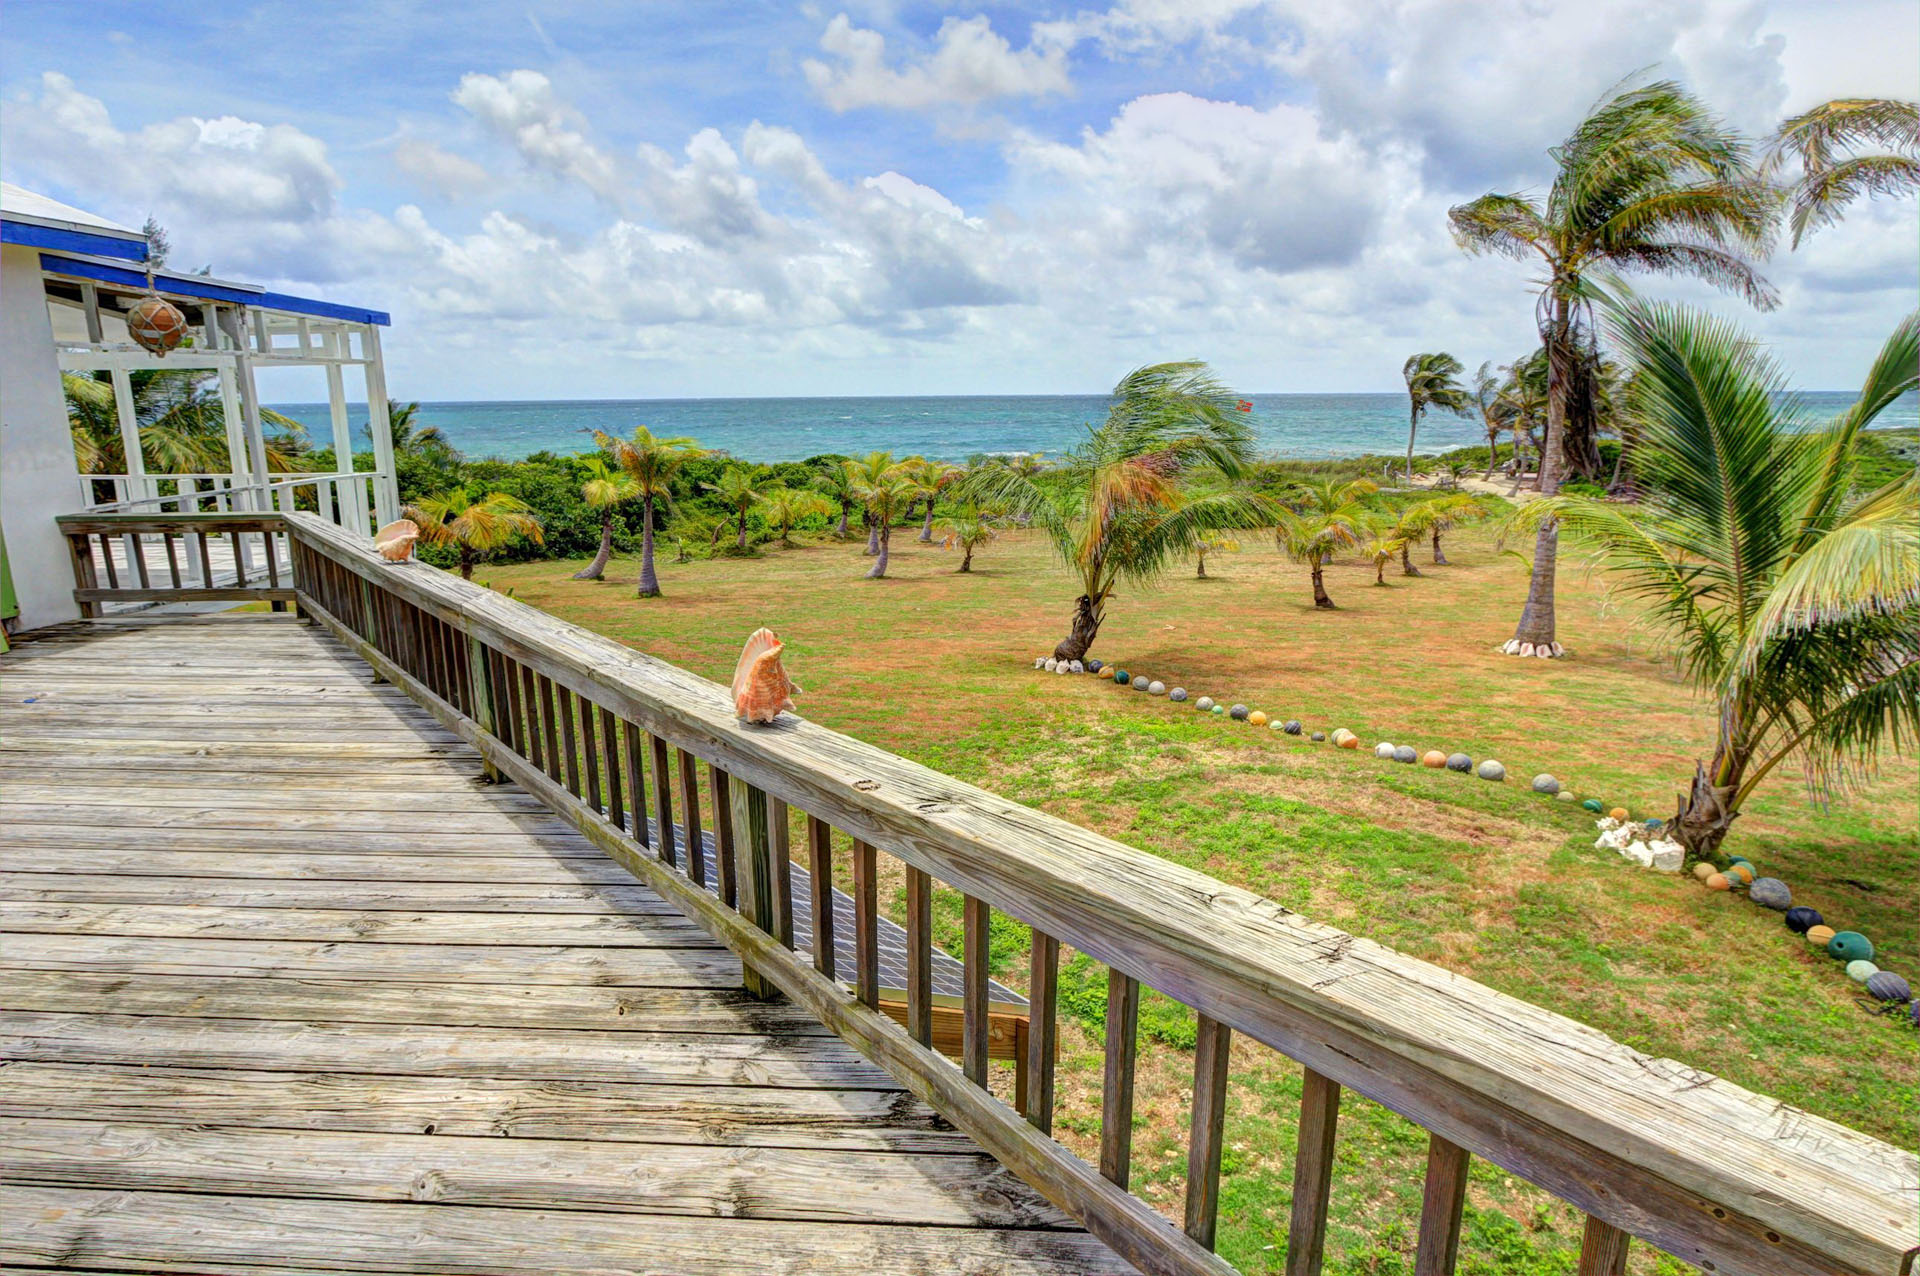 Single Family Home for Sale at 'Casa Mar' - Spacious, Private, Oceanfront Living On Two Acres Of Land (MLS 27131) Little Harbour, Abaco, Bahamas